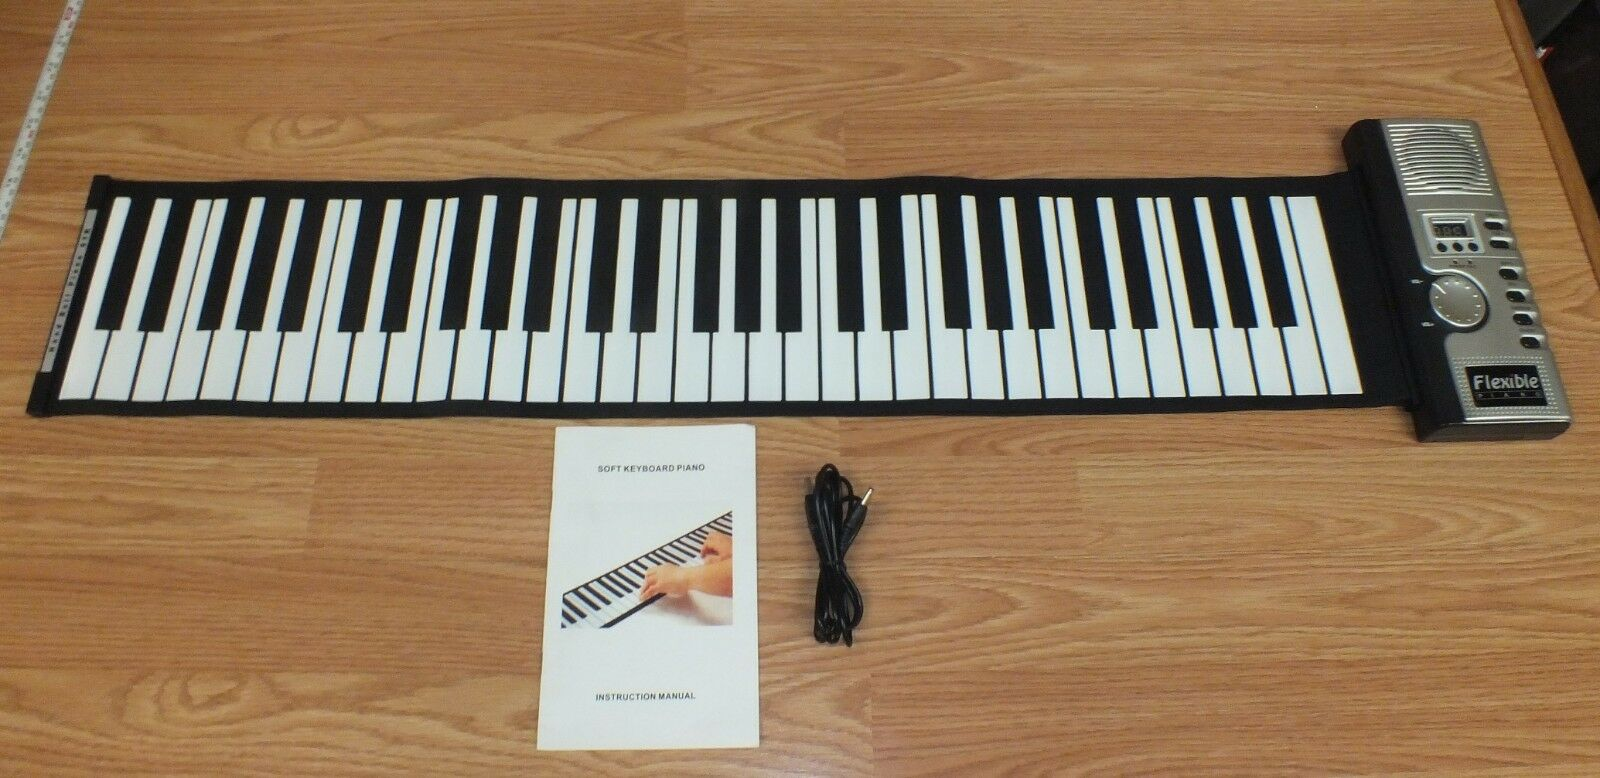 61 MIDI Soft Keyboard Piano Musical Toy With Headphone Connection  READ